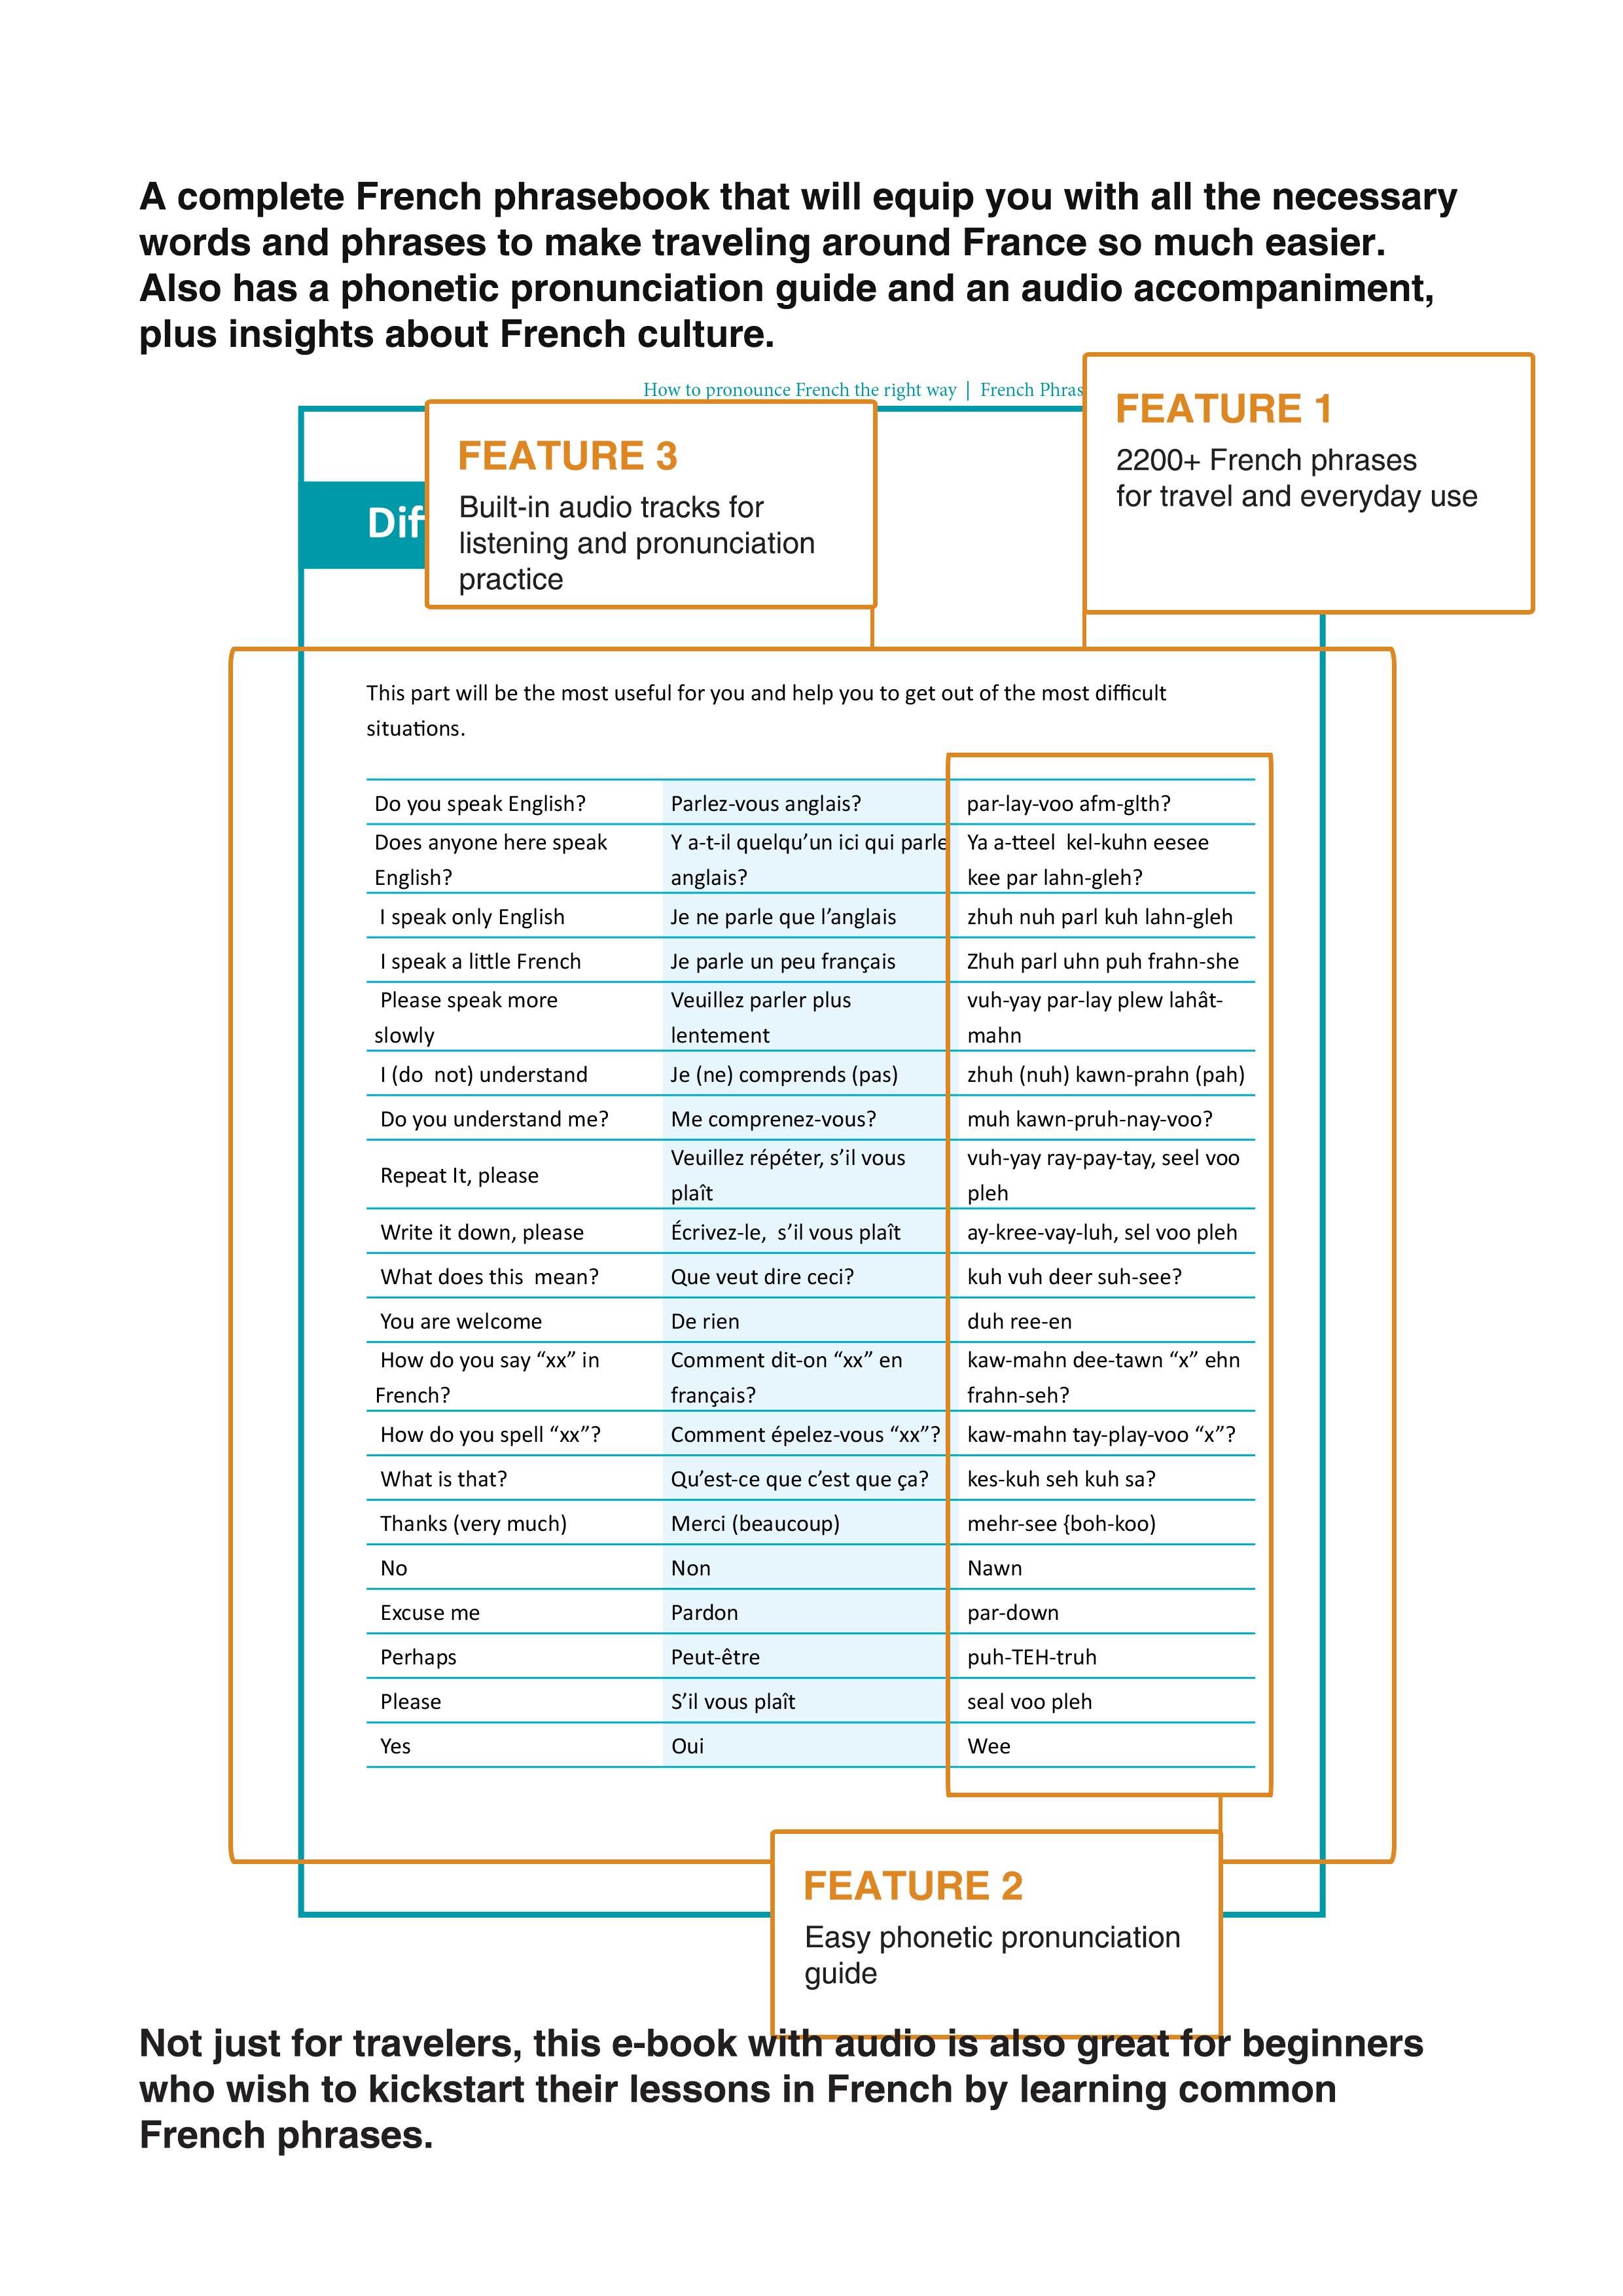 FrenchPhrasebookPage10.png 2,480×3,508 pixels